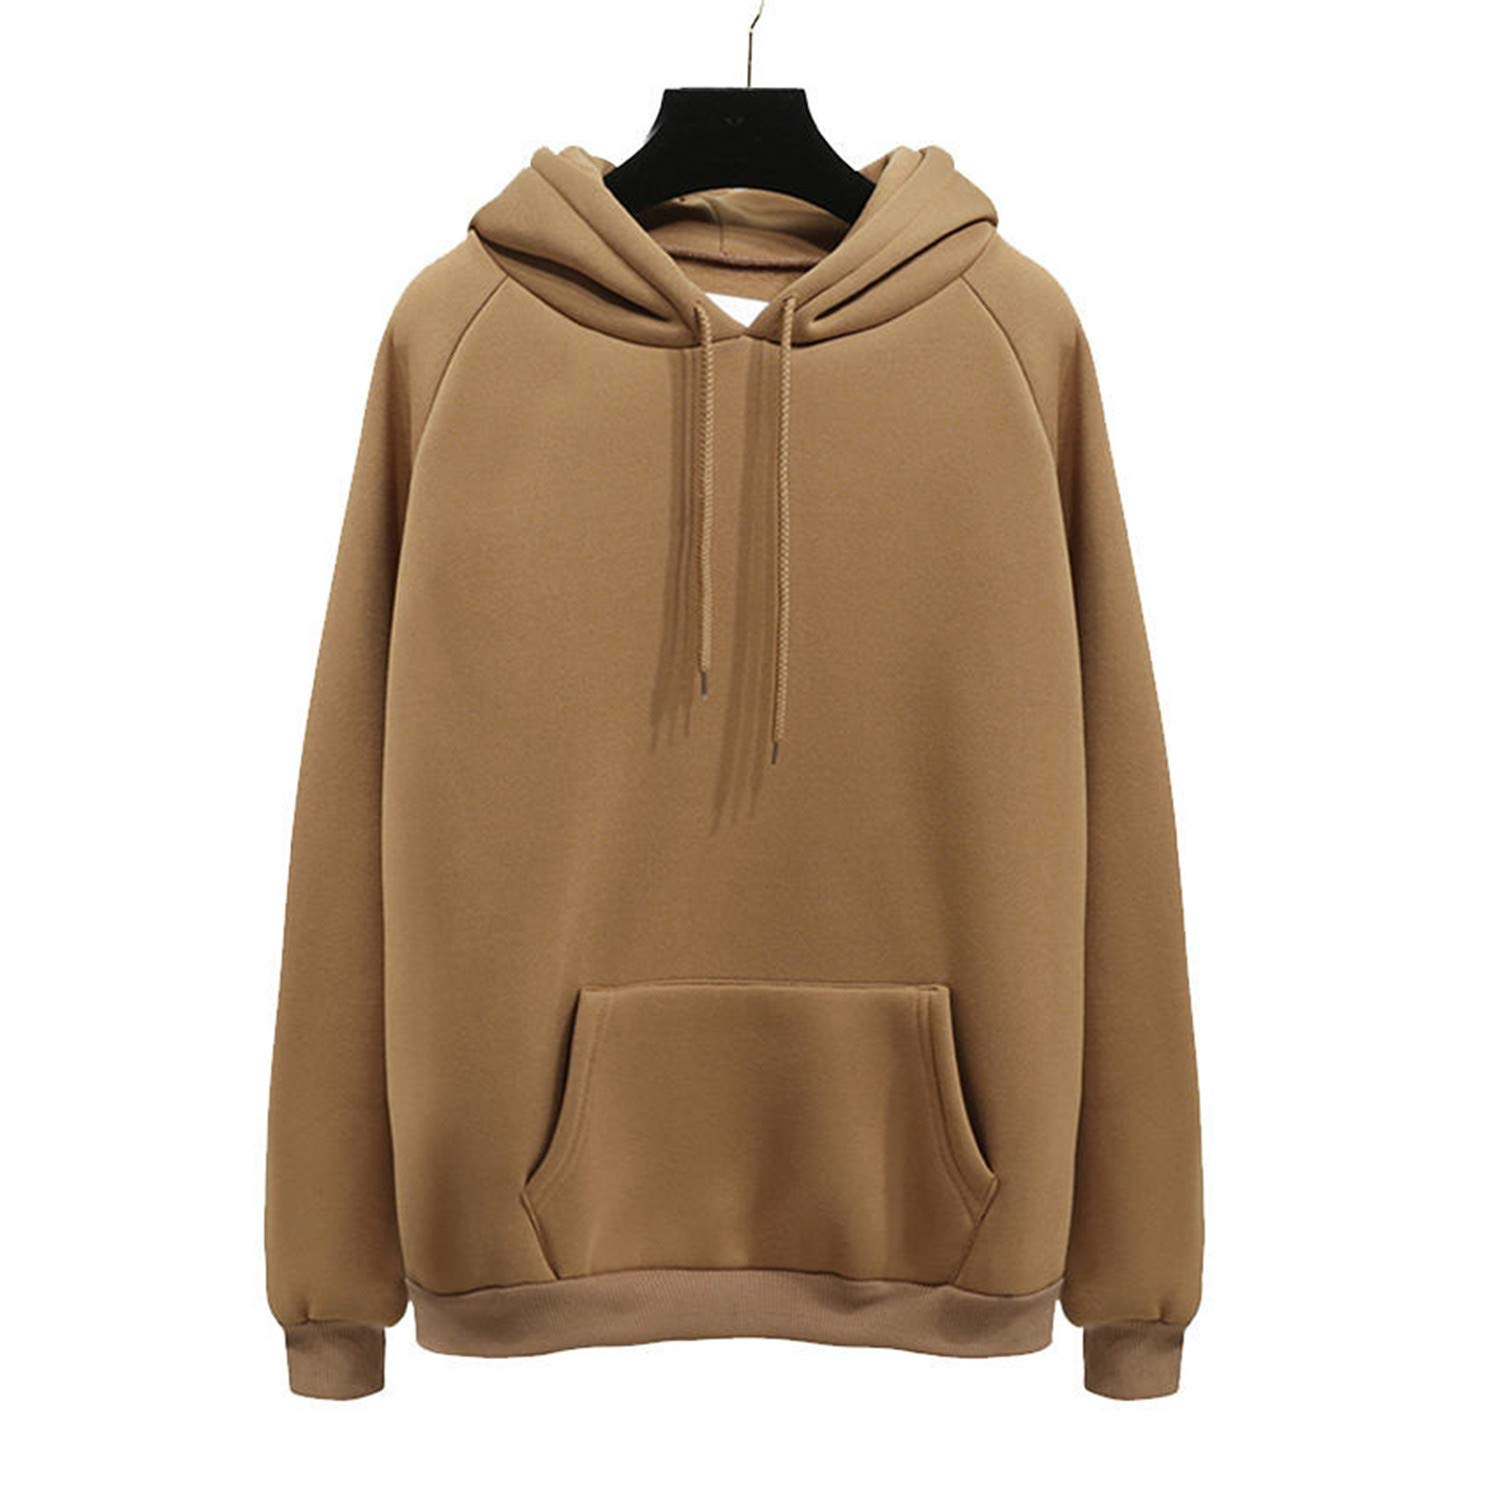 George Gouge Fashion Harajuku Lotus Root Pink Pullover Thick Loose Women Hoodies Sweatshirts Female Casual